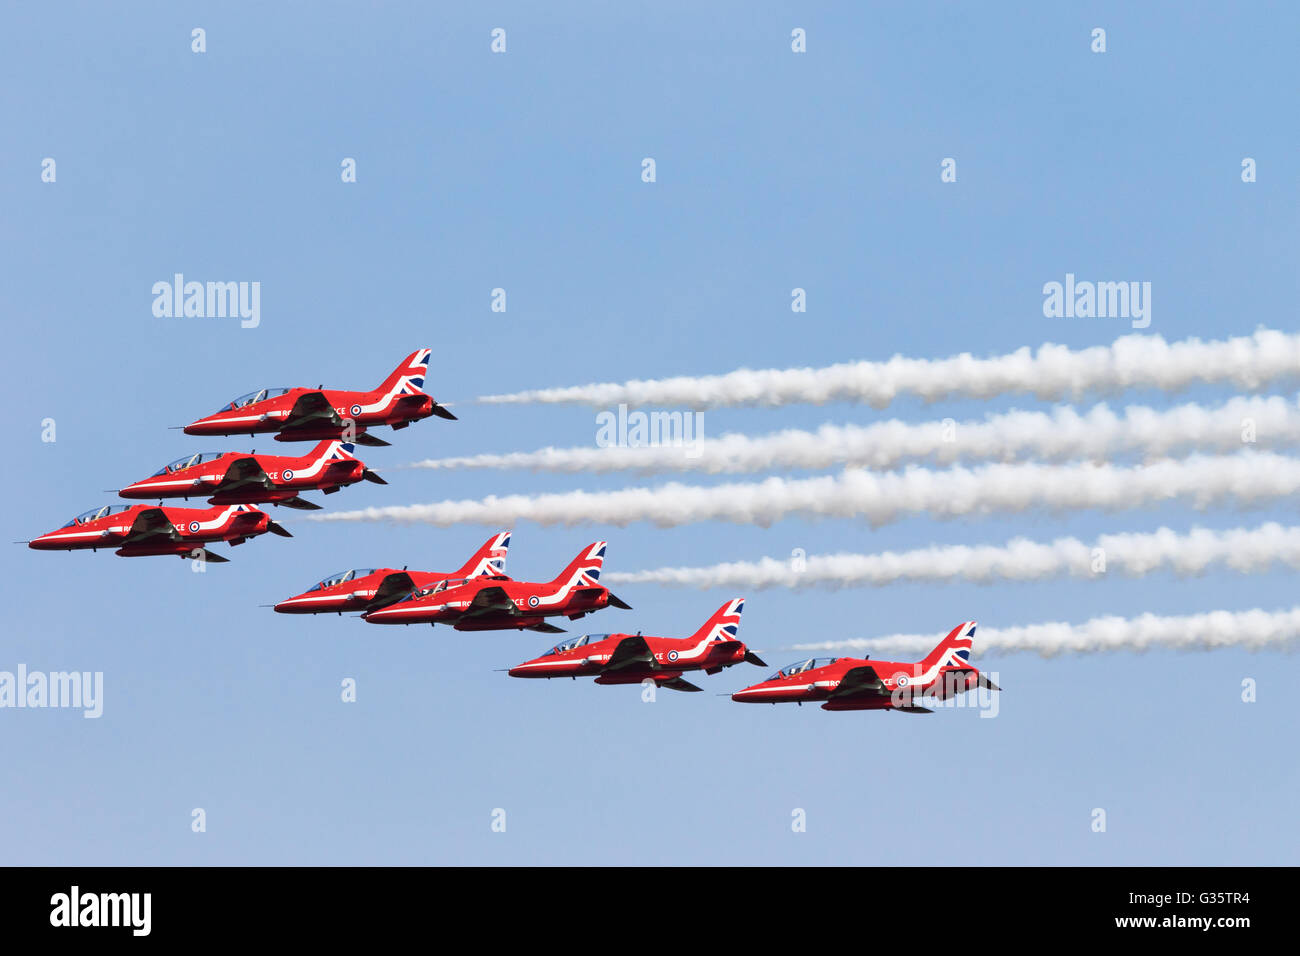 Seven members of the RAF Red Arrows aerobatic display team flying in formation with smoke, Duxford American Airshow, - Stock Image